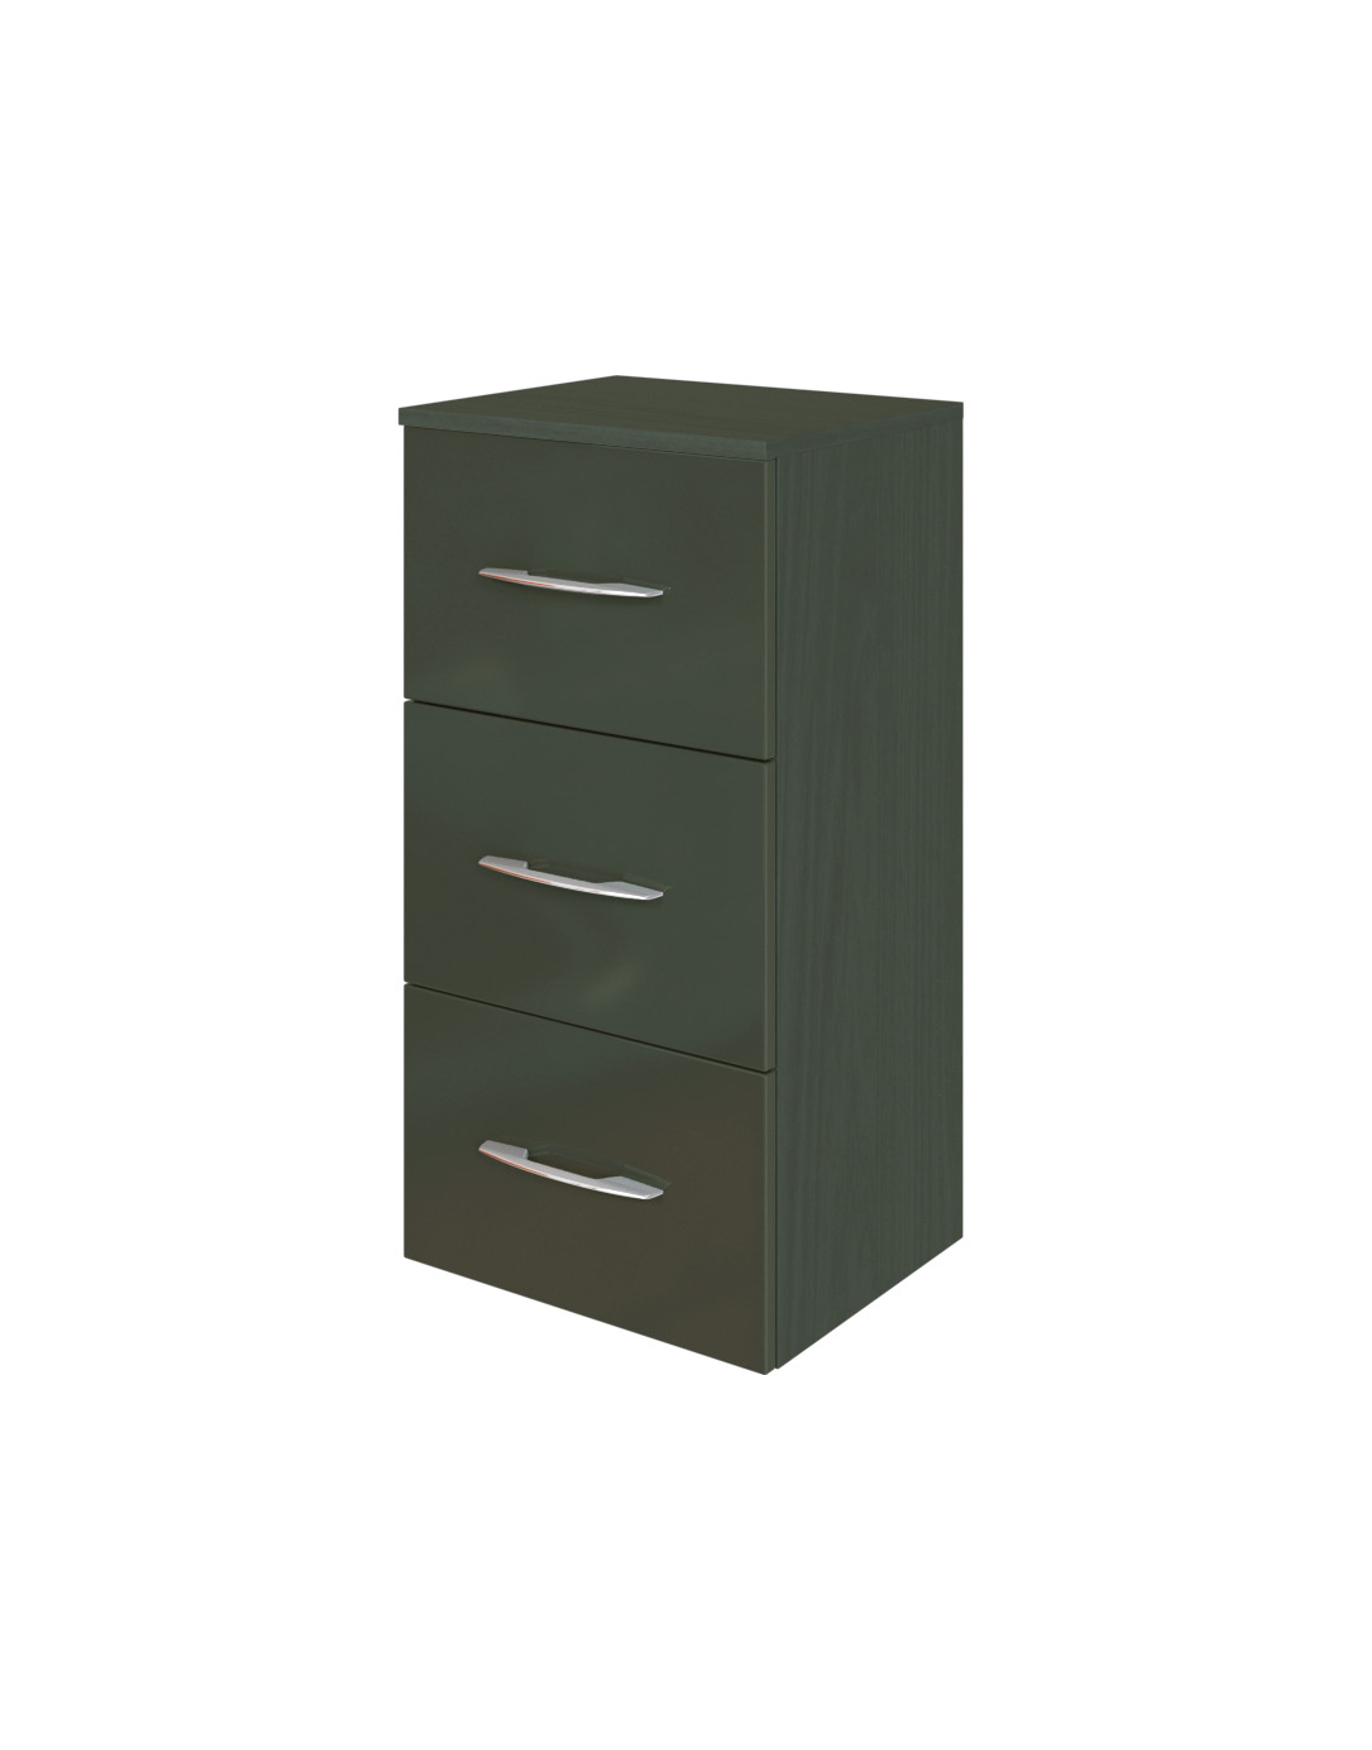 bad unterschrank florida 3 ausz ge 40 cm breit. Black Bedroom Furniture Sets. Home Design Ideas